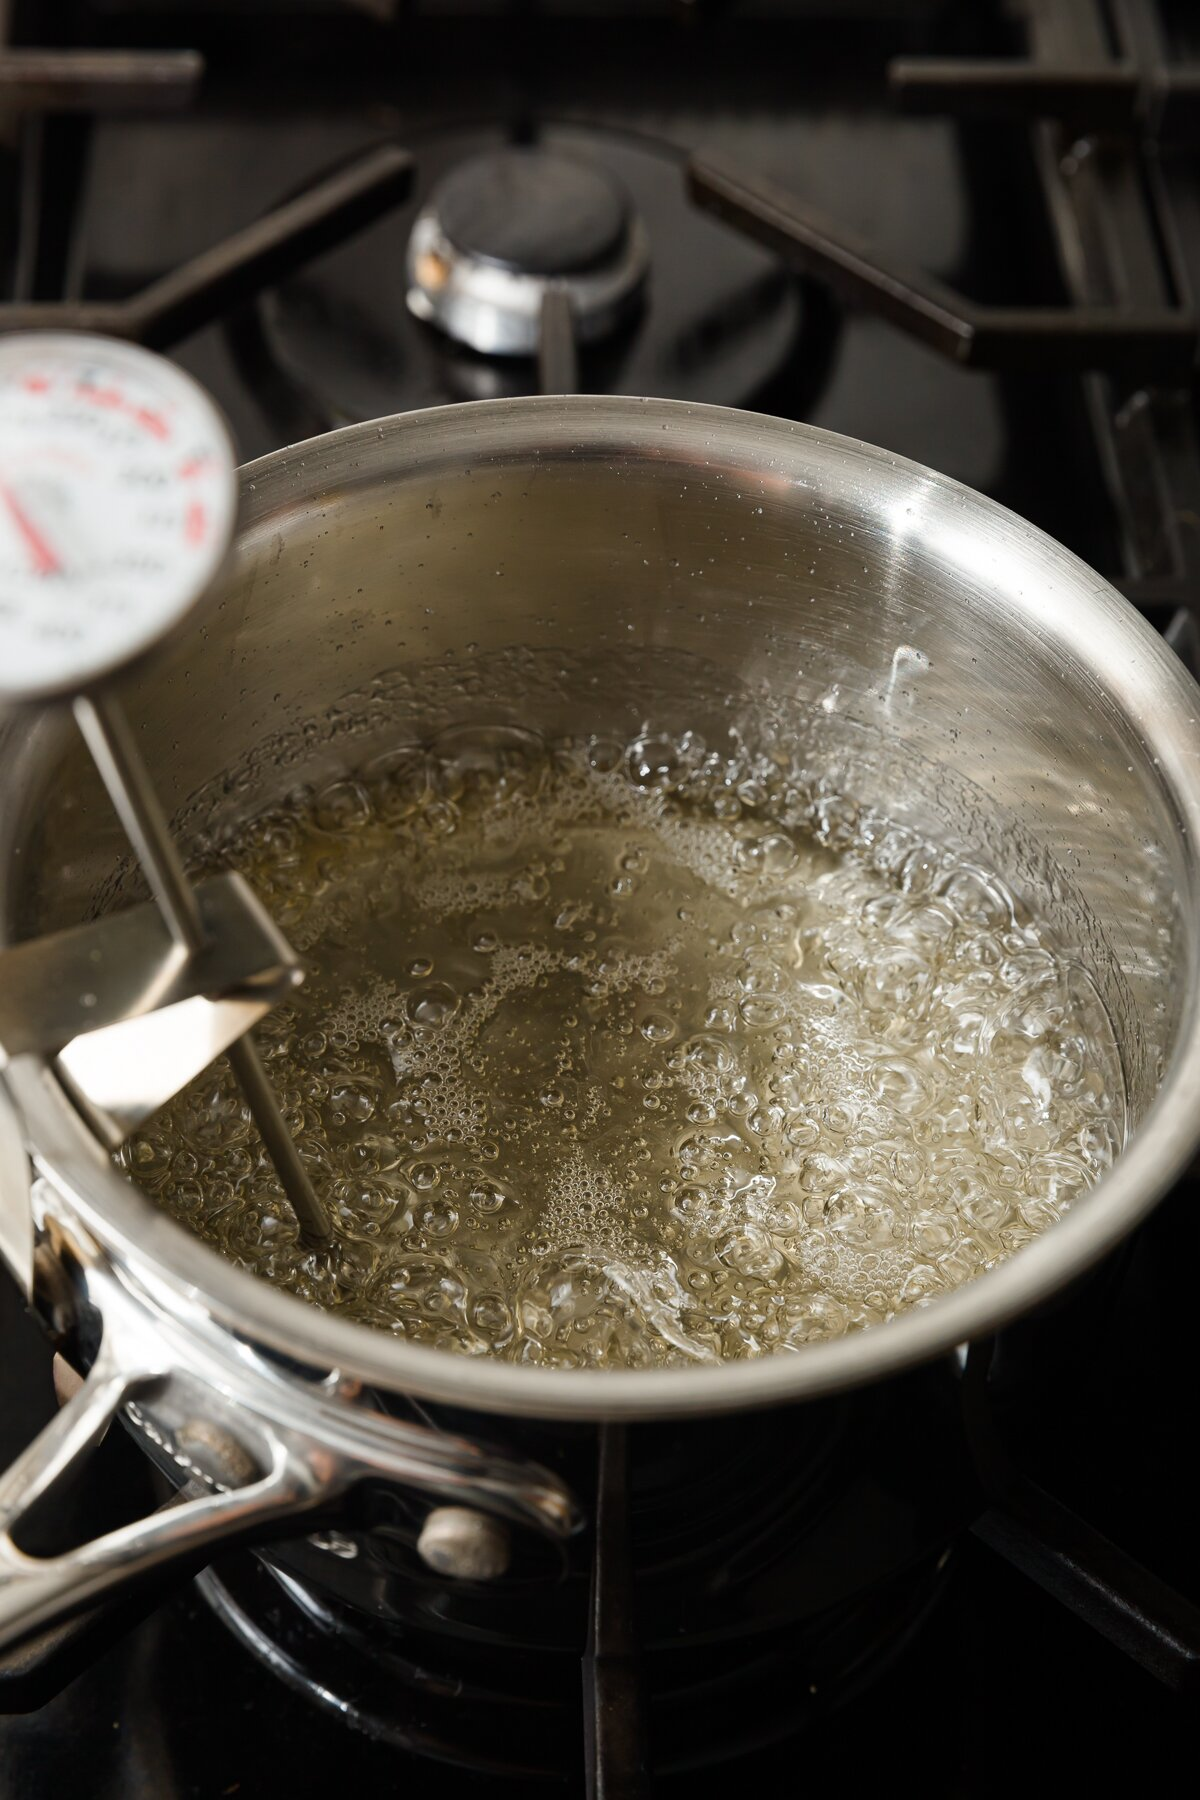 water and sugar boiling in a medium pot on a stovetop